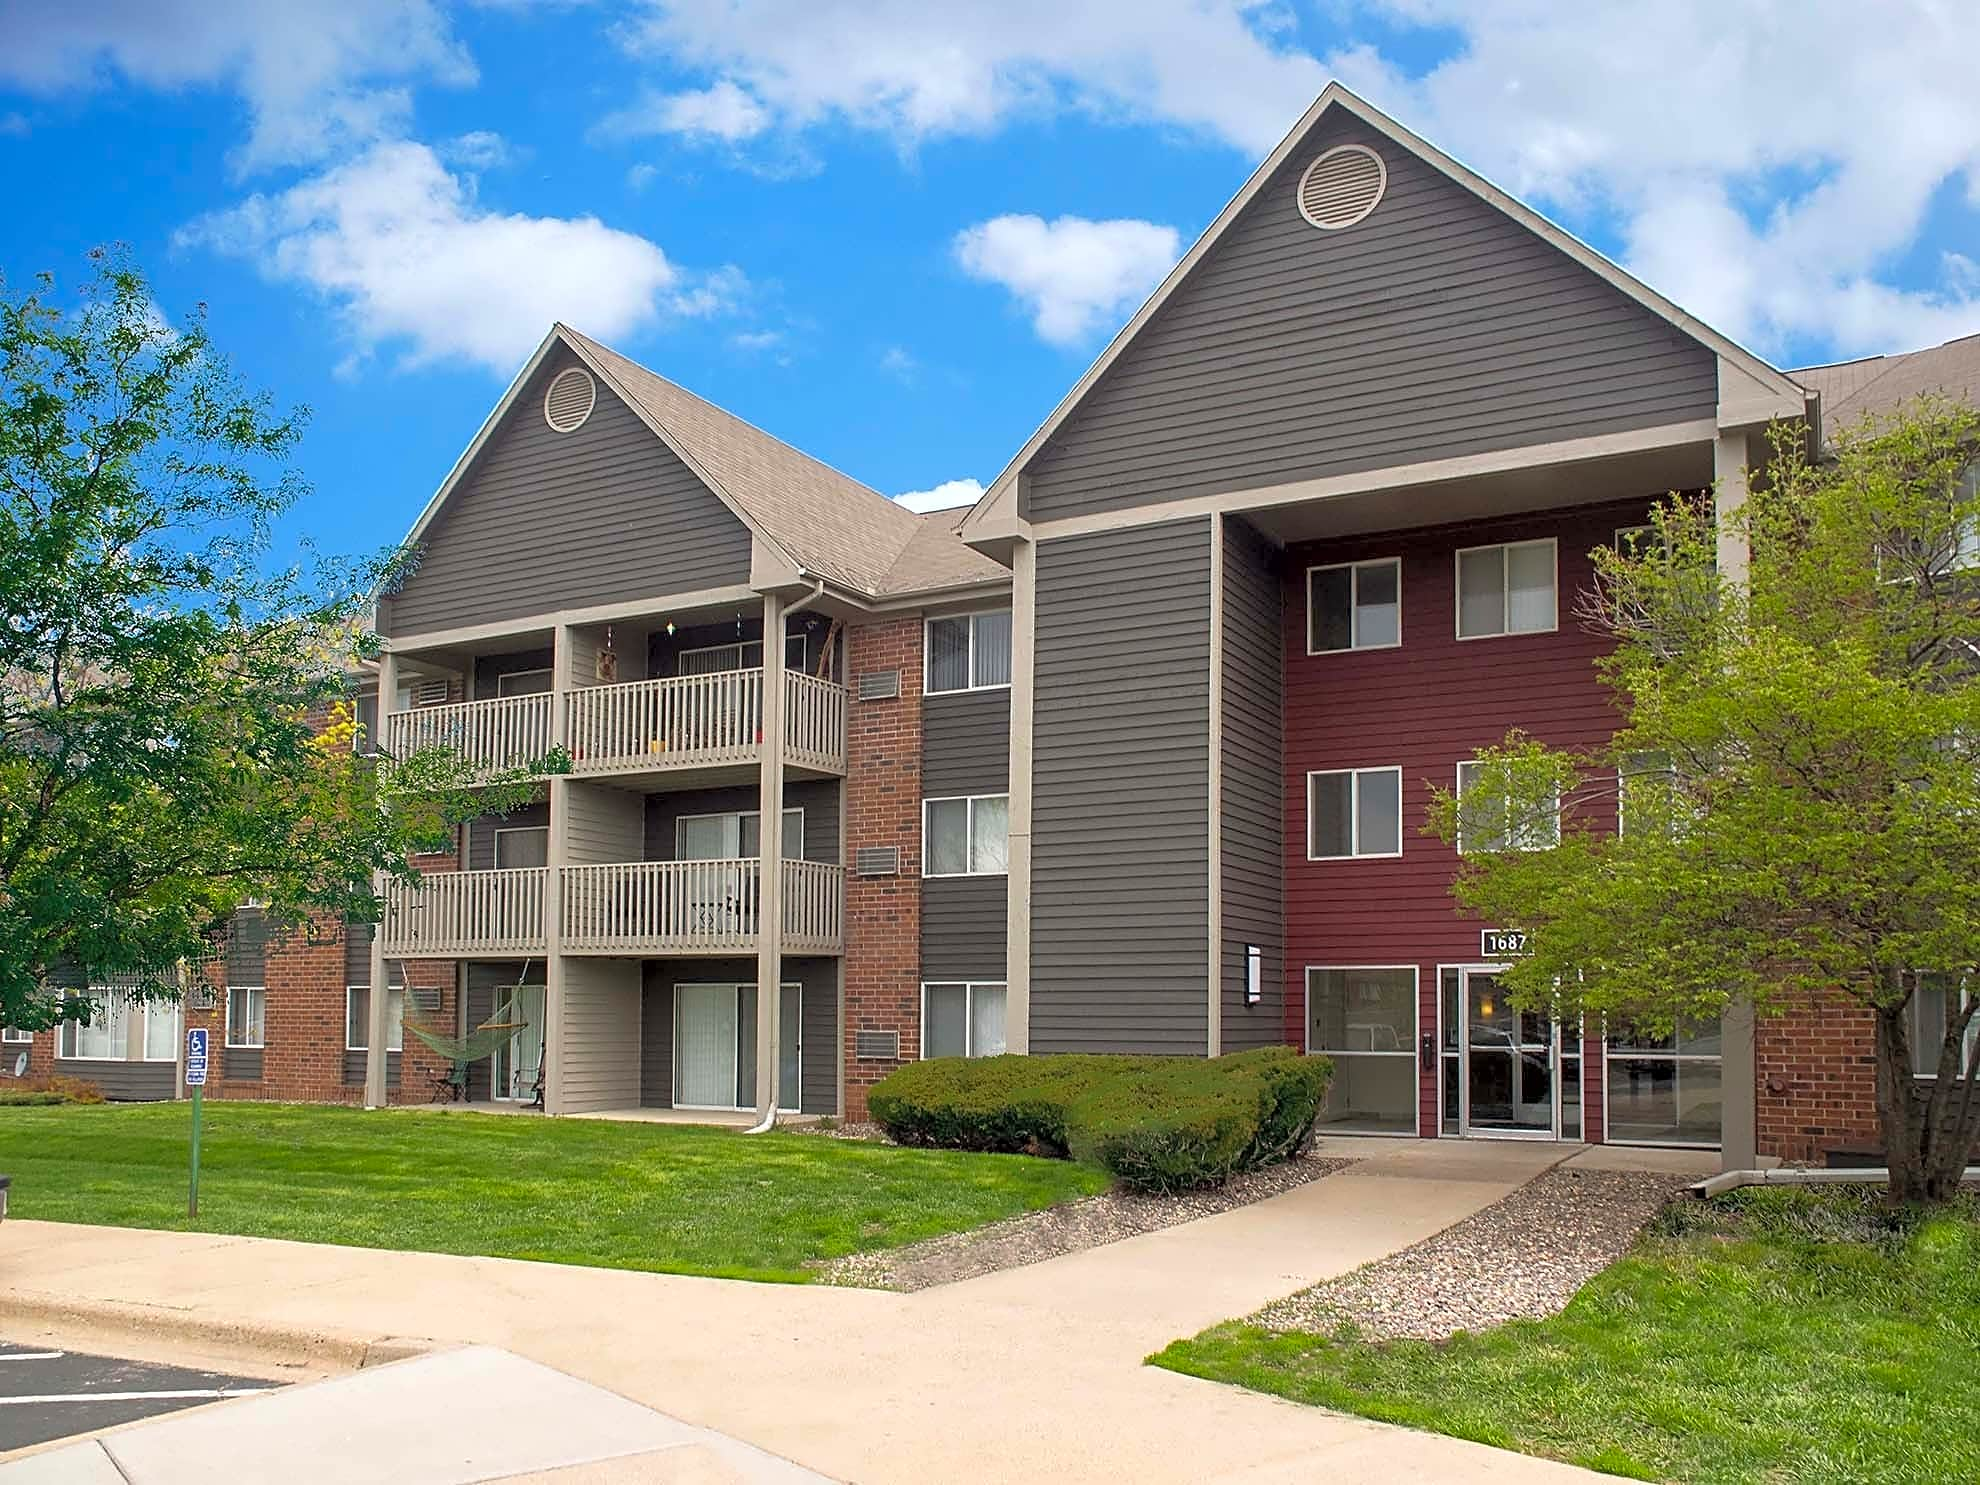 Photo: Woodbury Apartment for Rent - $1679.00 / month; 3 Bd & 2 Ba